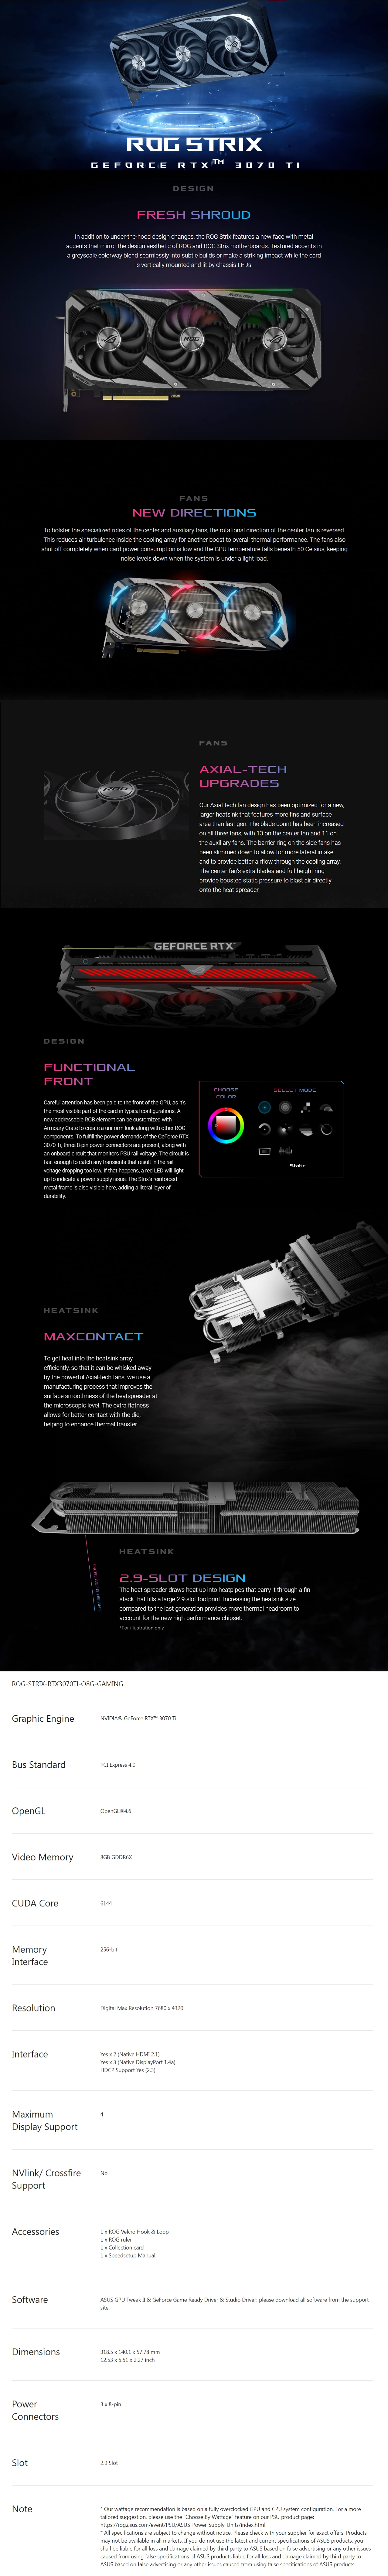 A large marketing image providing additional information about the product Asus GeForce RTX 3070 Ti ROG Strix OC 8GB GDDR6X - Additional alt info not provided